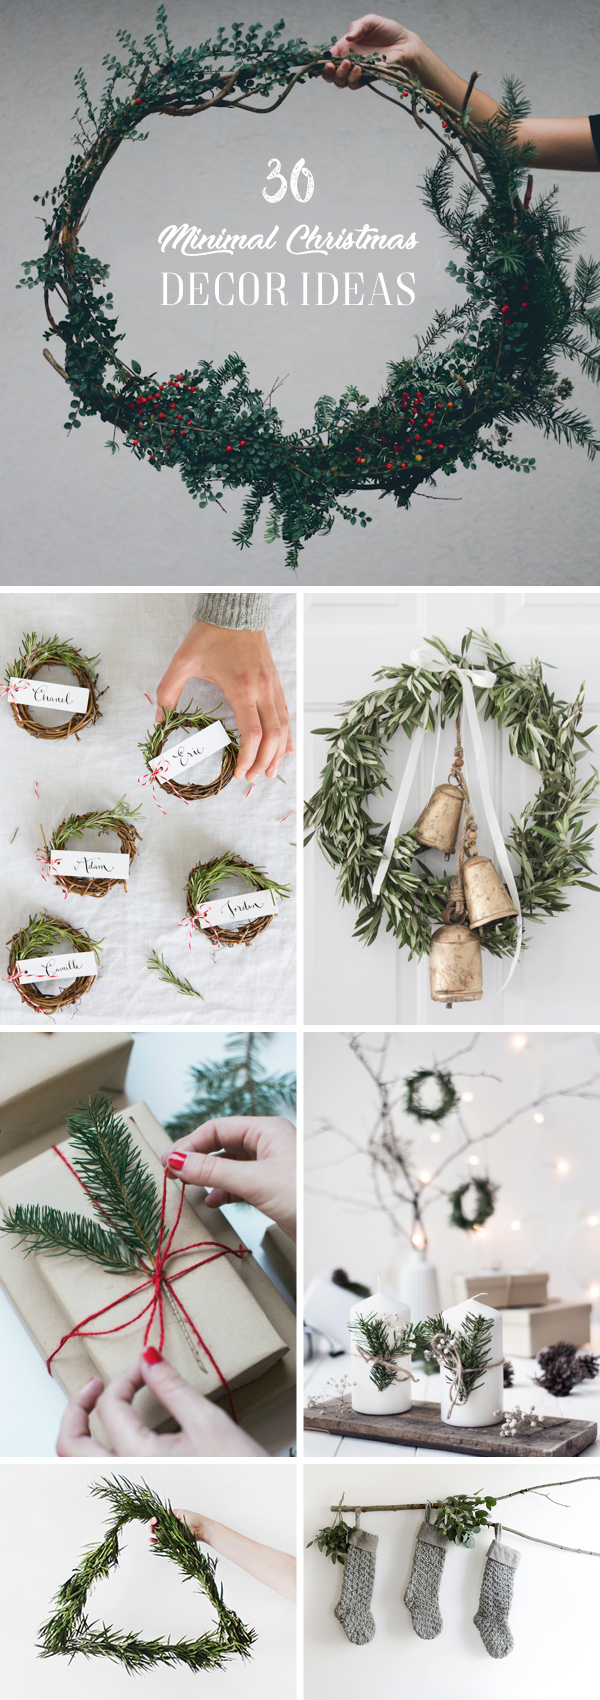 30 Minimal Christmas Decor Ideas For The Subtle Lovers Out There